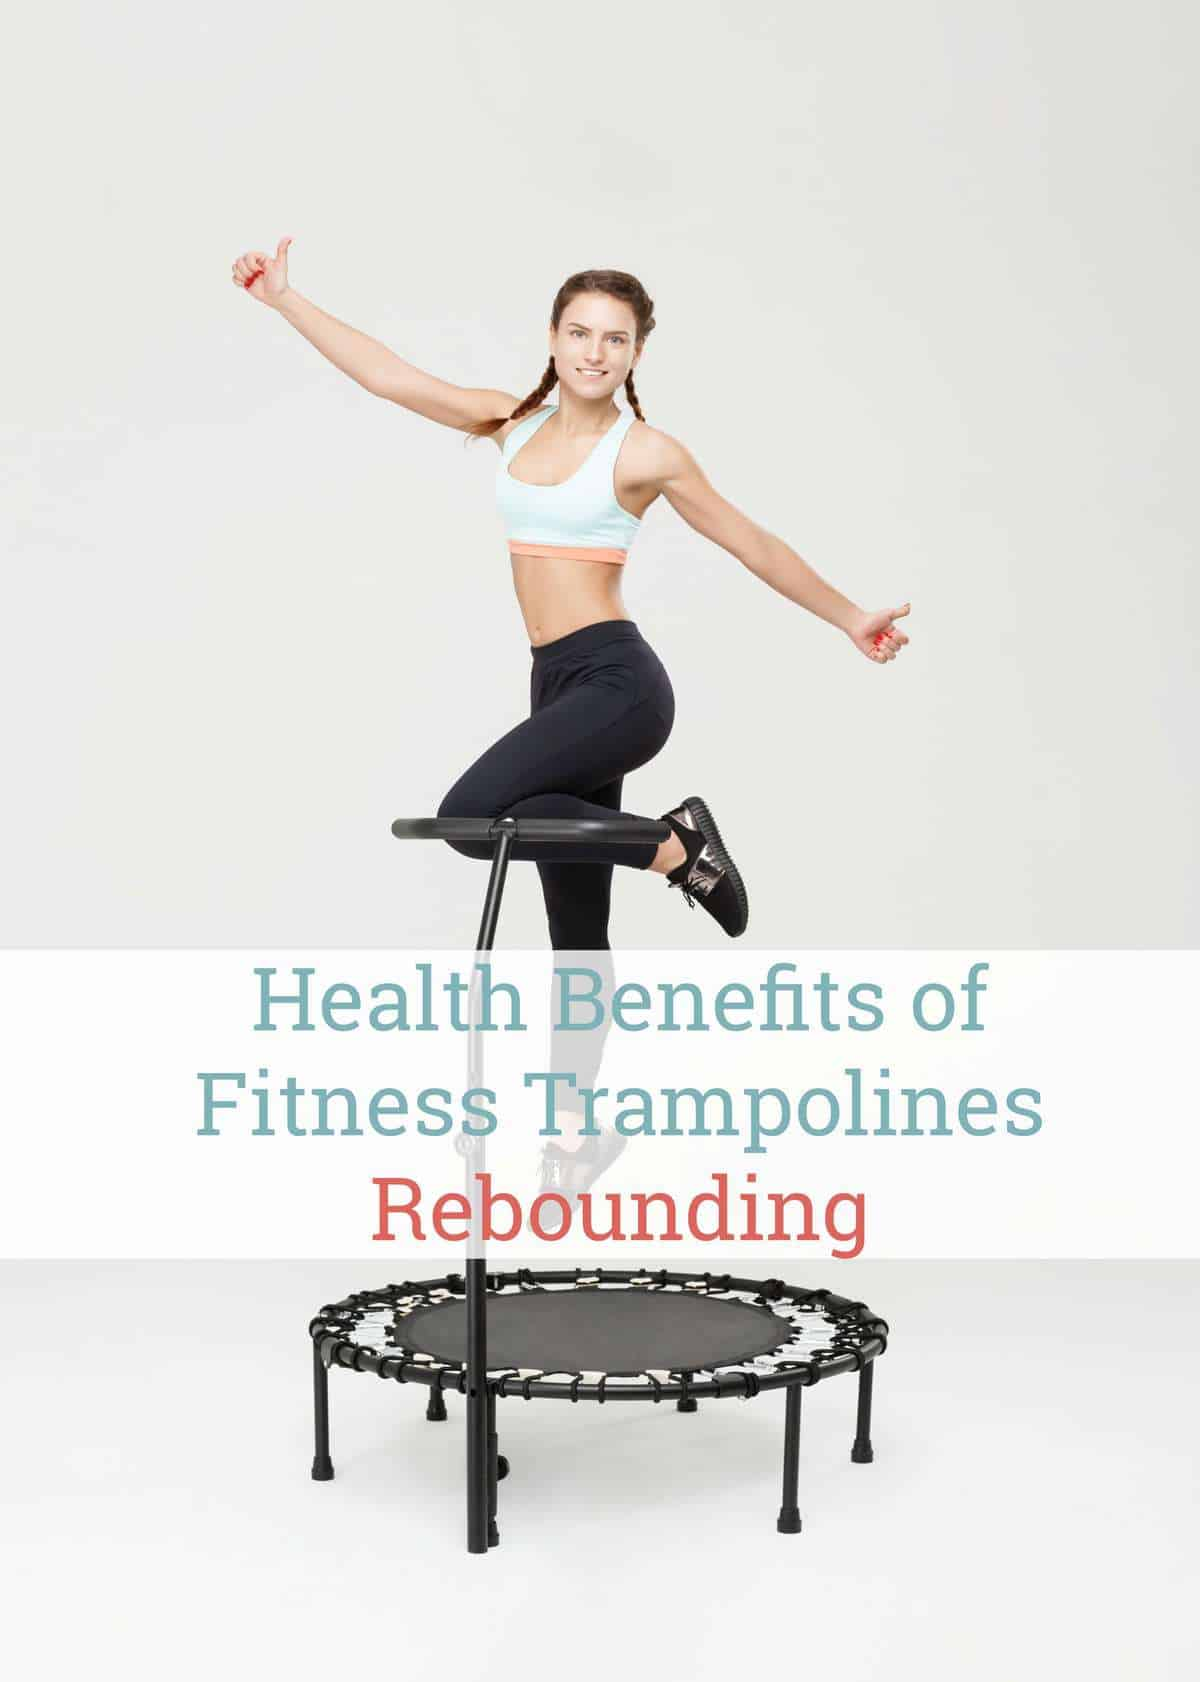 Health Benefits of Fitness Trampolines - Rebounding - Healthy Living in Body and Mind